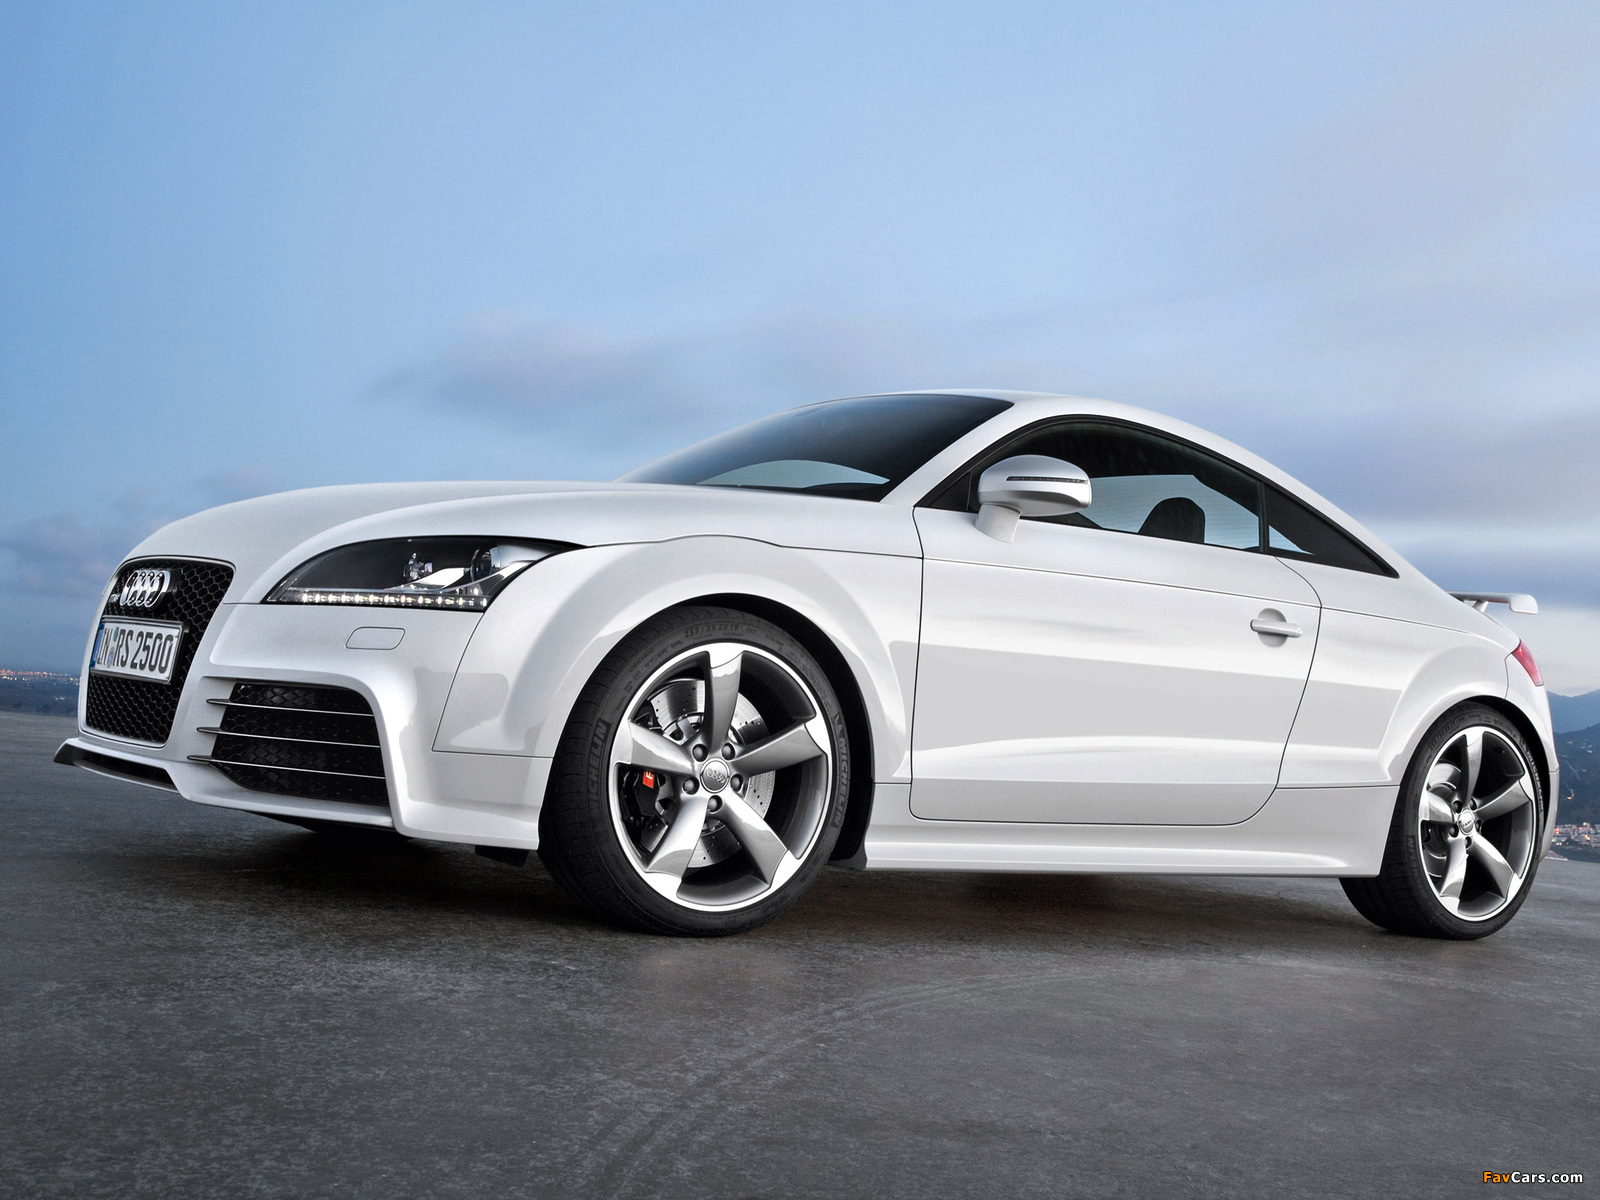 photos of audi tt rs coupe 8j 2009 1600x1200. Black Bedroom Furniture Sets. Home Design Ideas